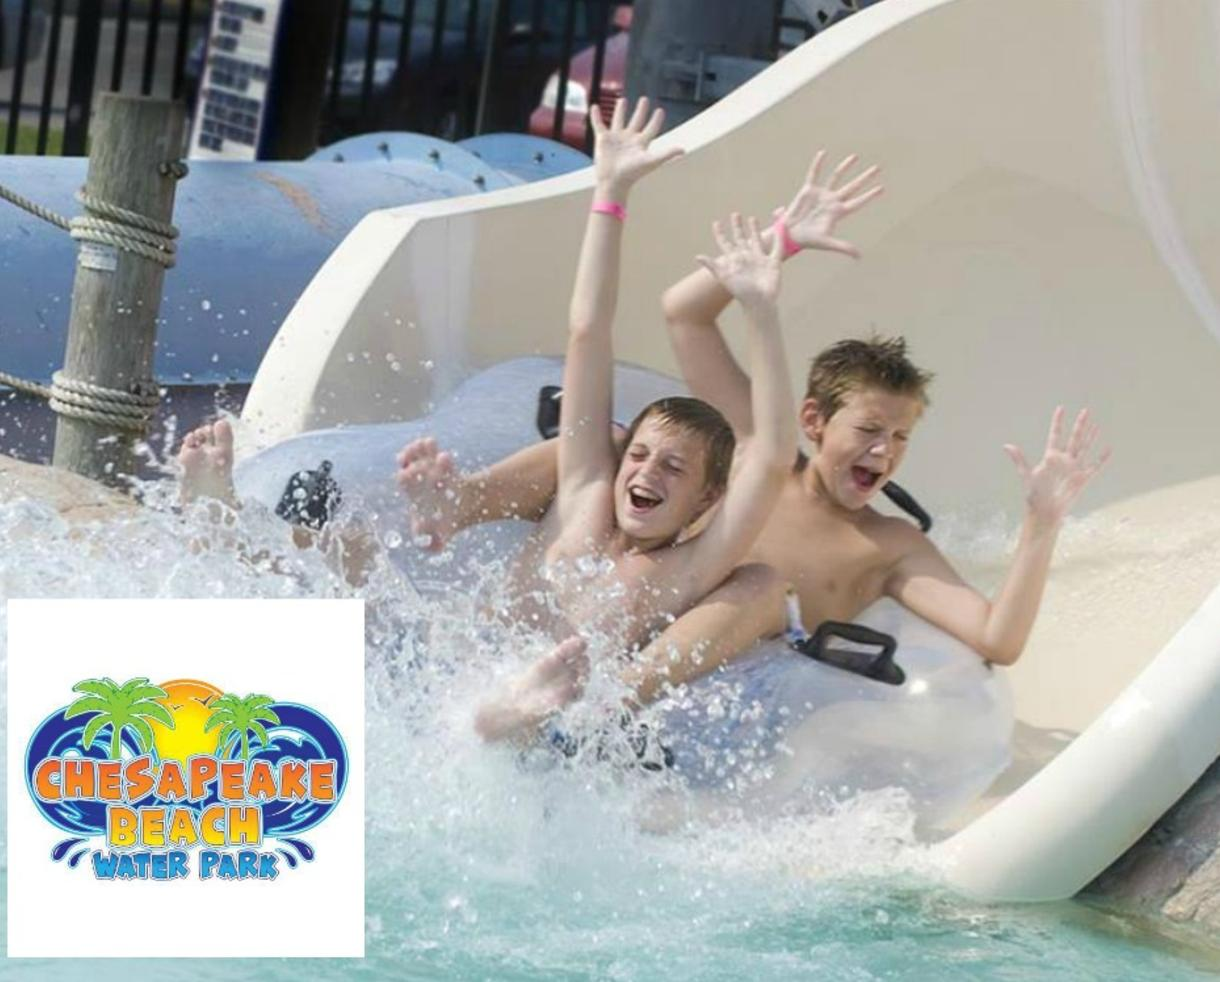 Chesapeake Beach Water Park Weekday Admission